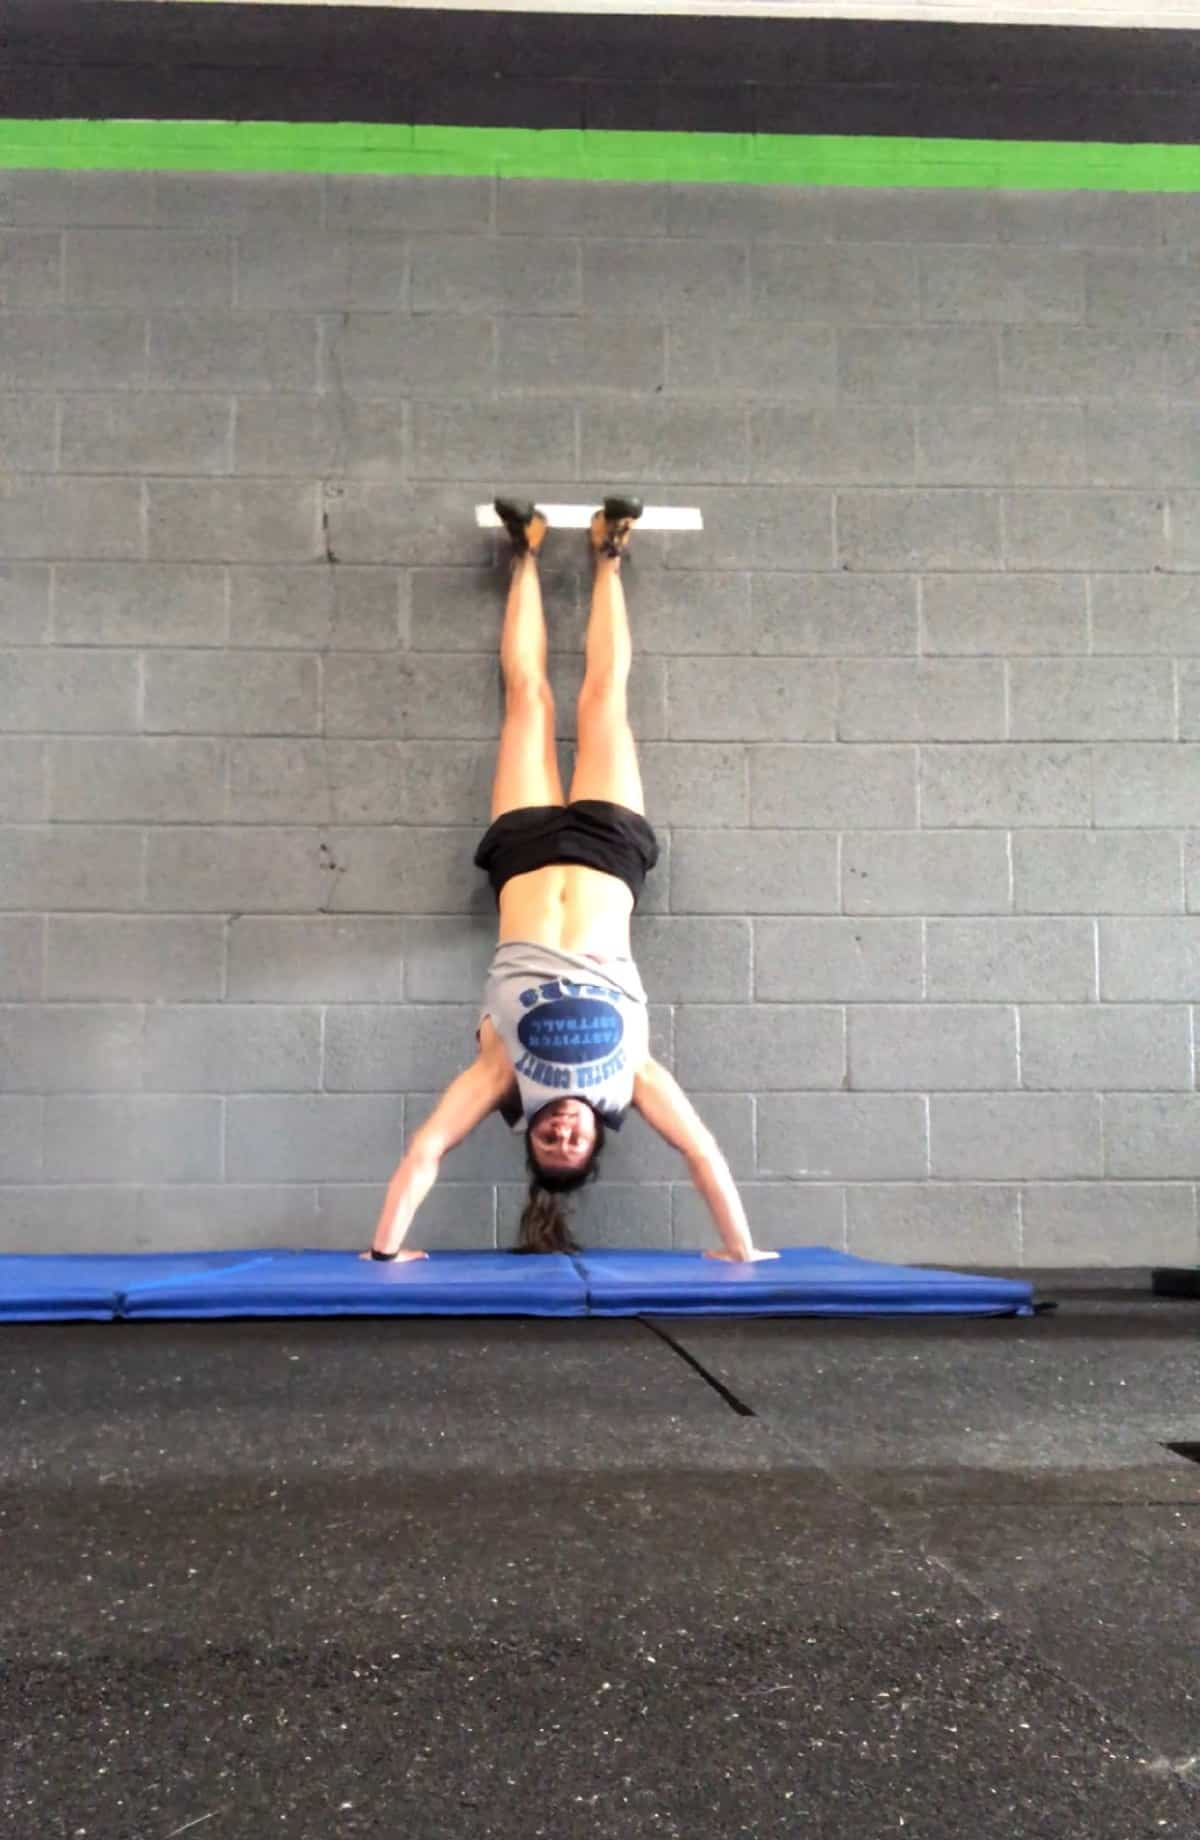 Girl upside-down against a wall doing a handstand push-up